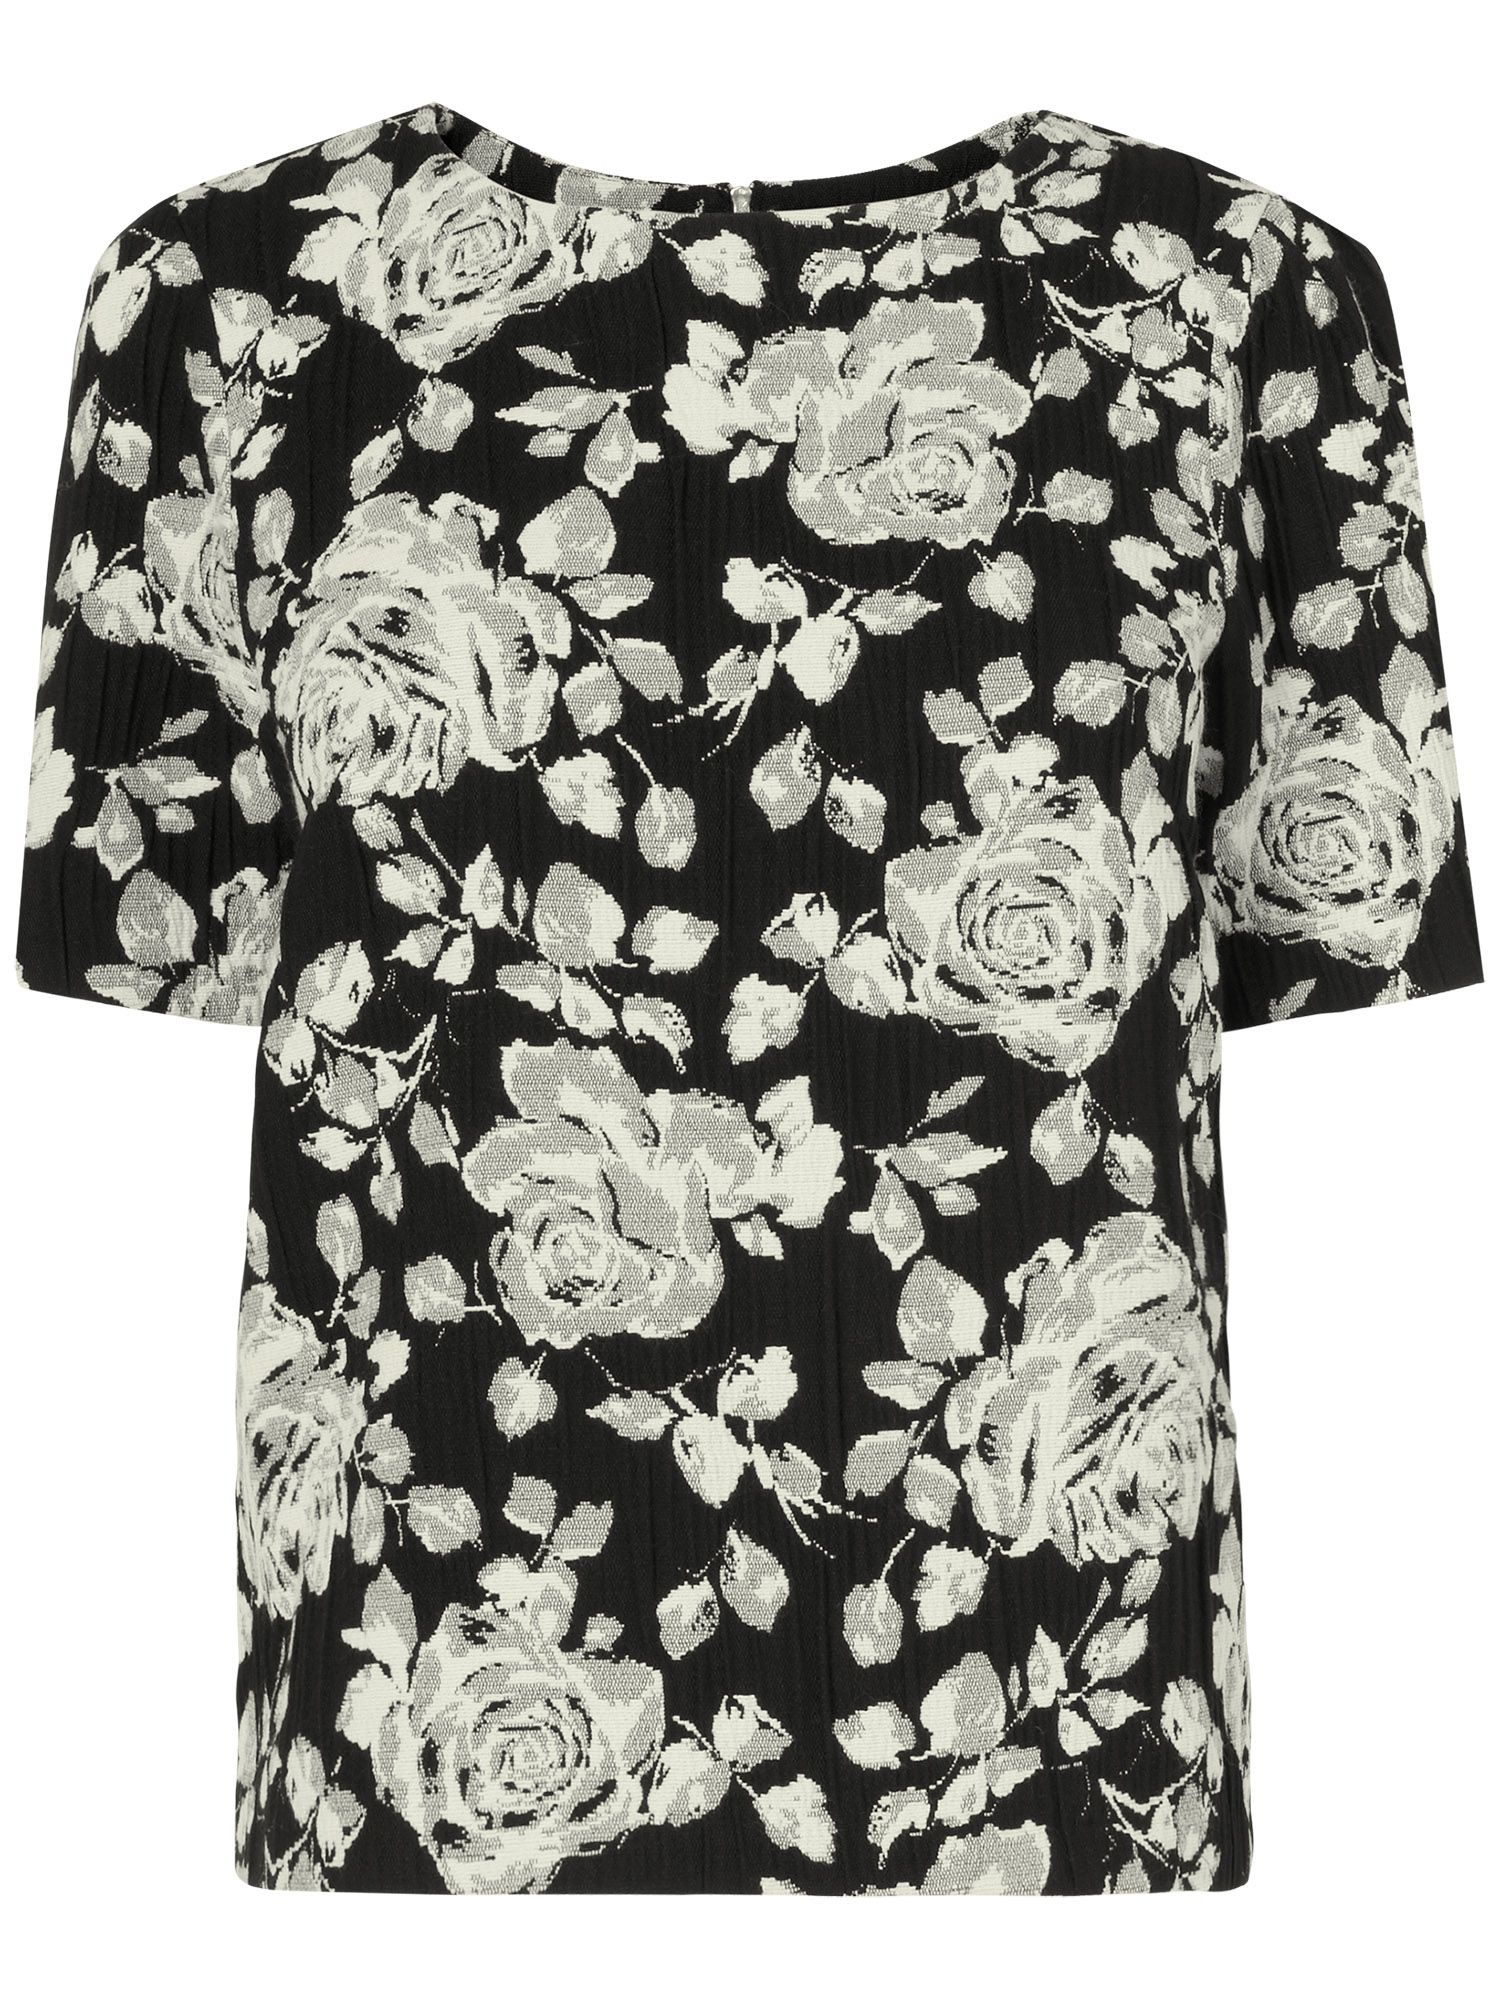 Marcie floral shell top